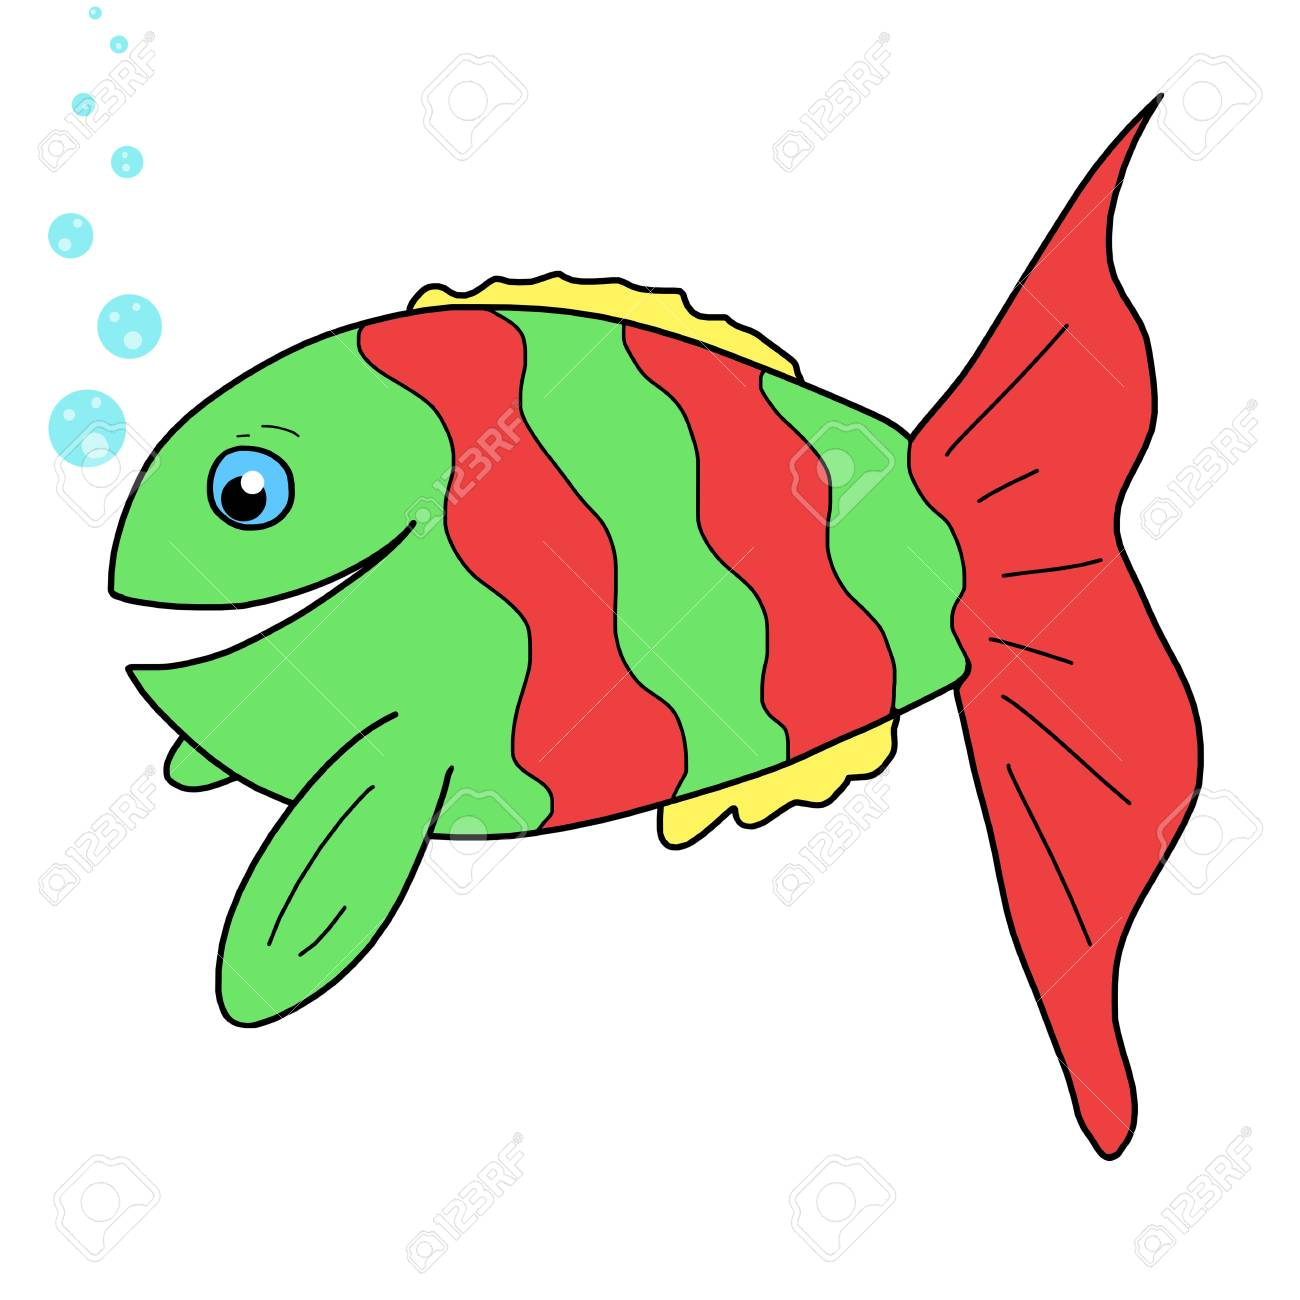 Hand-drawn Cute Fish, Cartoon Stock Photo, Picture And Royalty Free ...